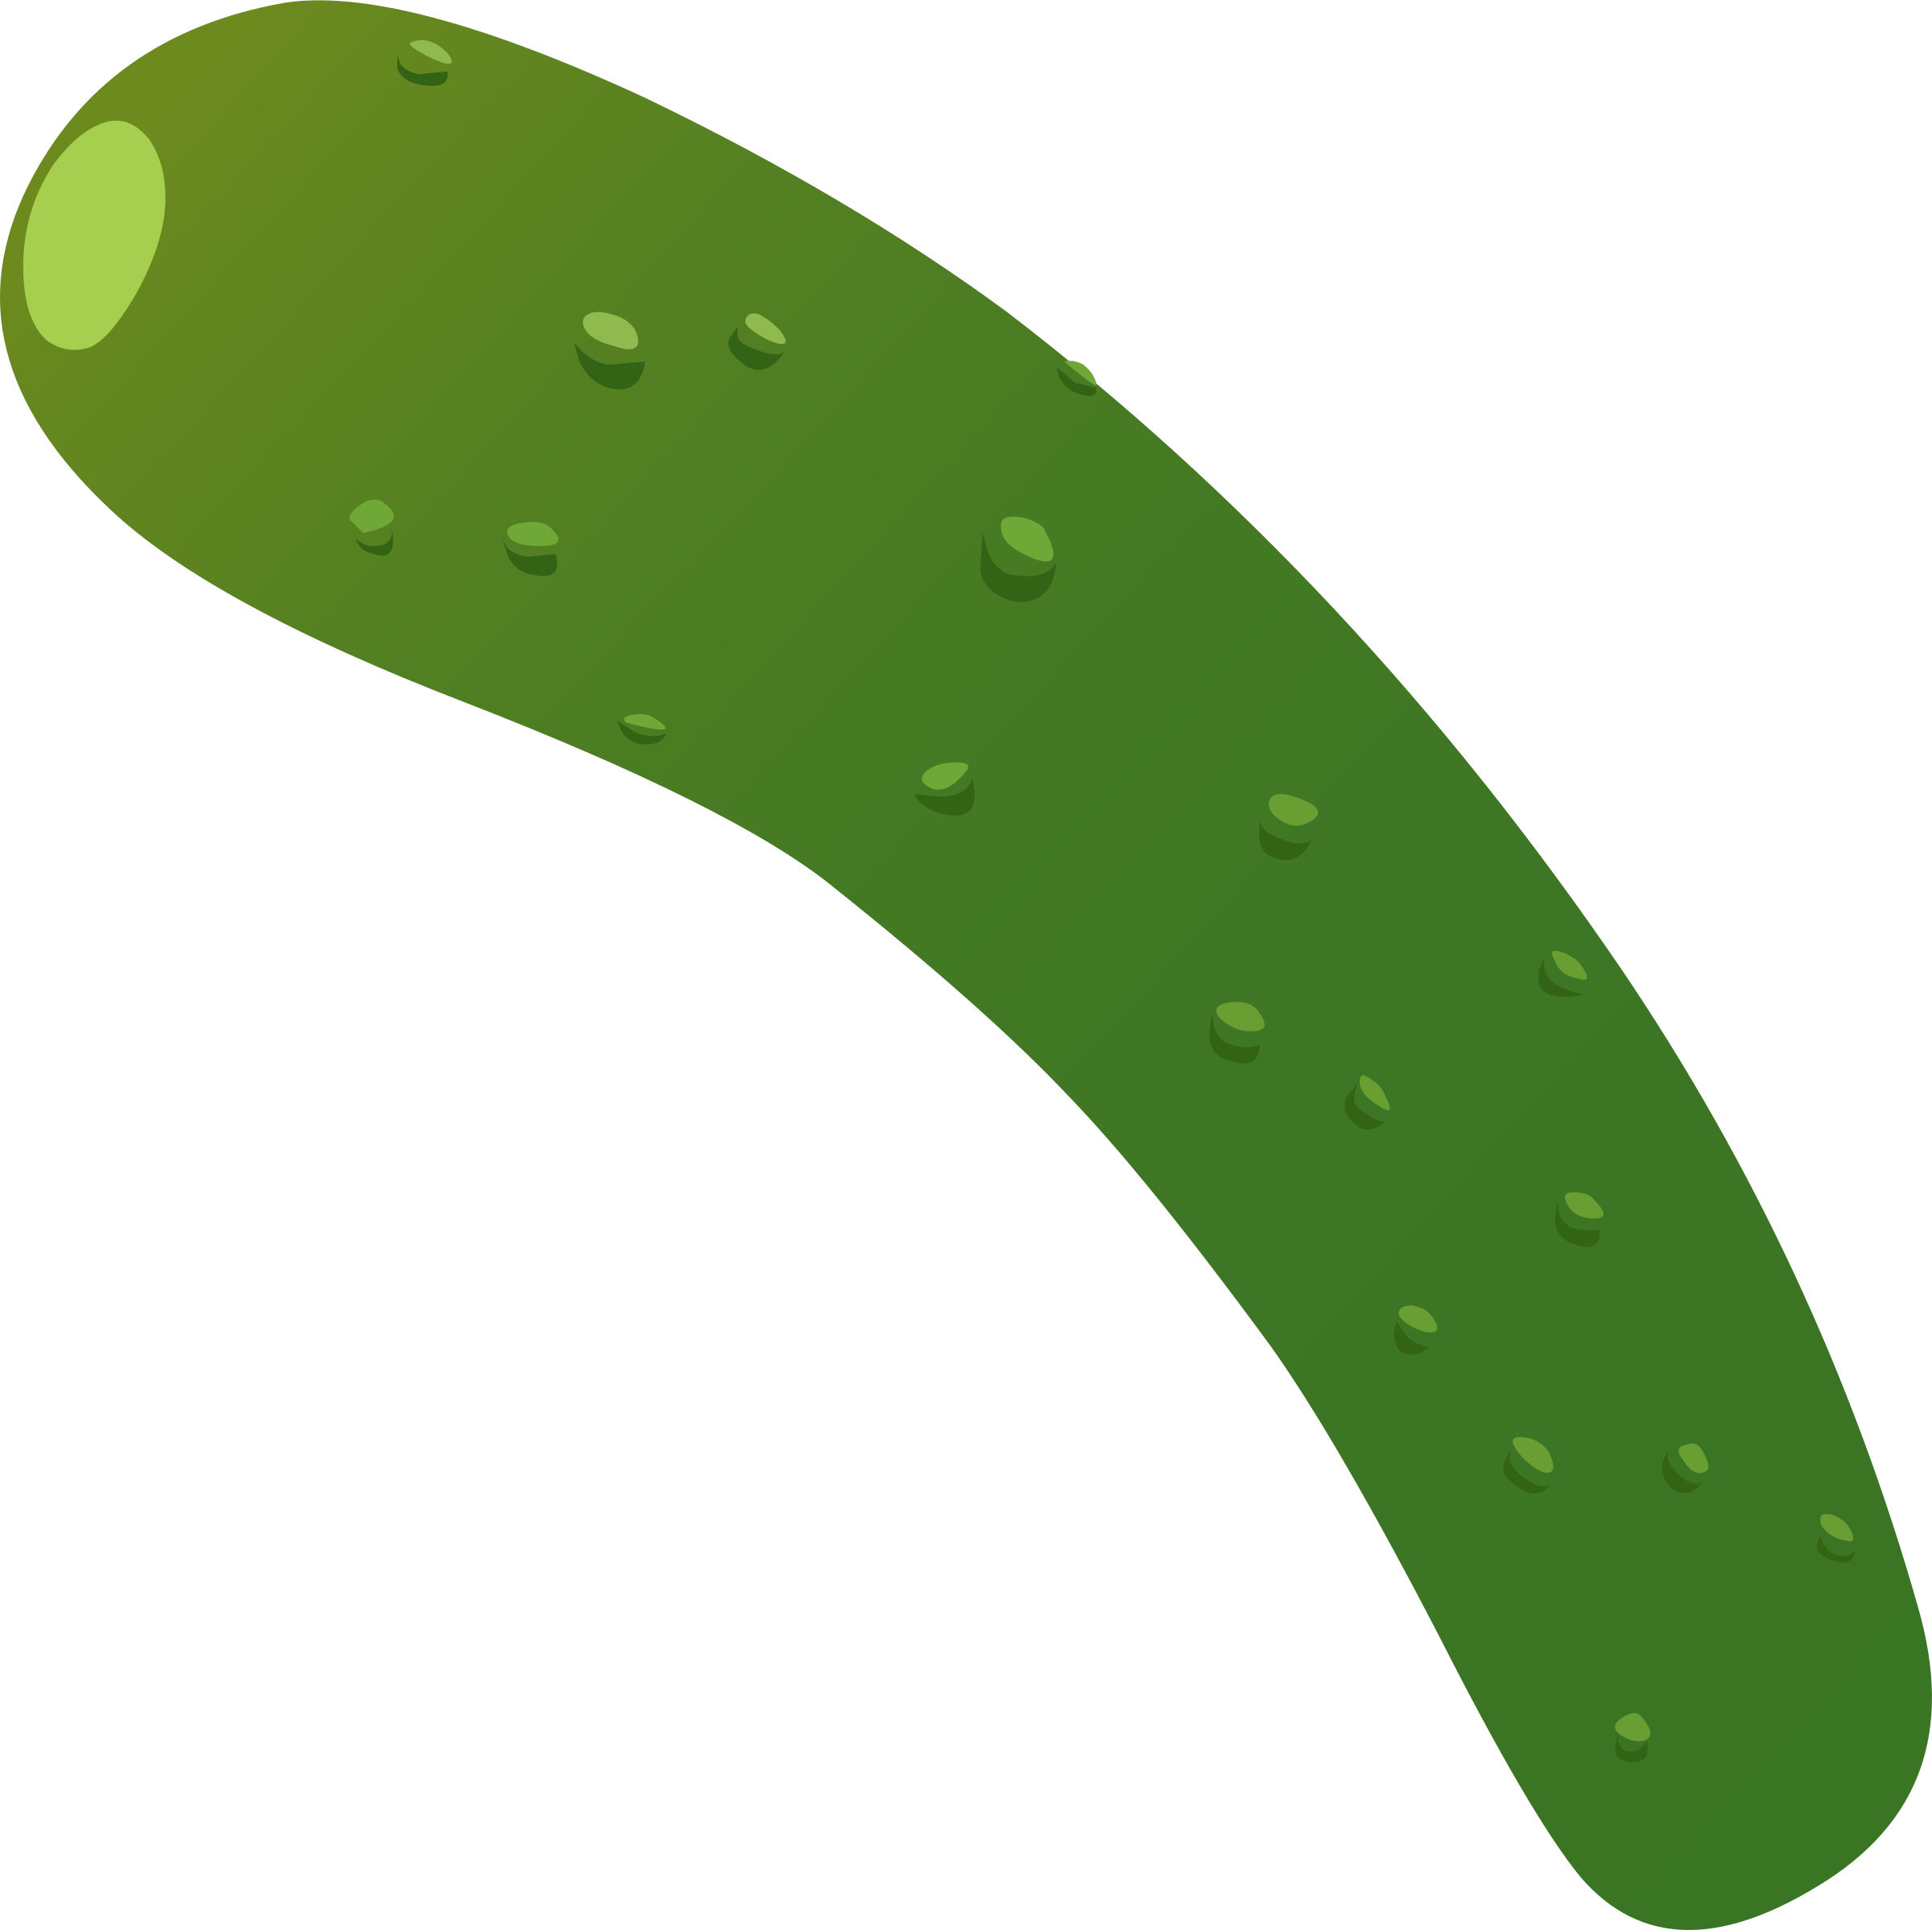 Food Zucchini by glitch